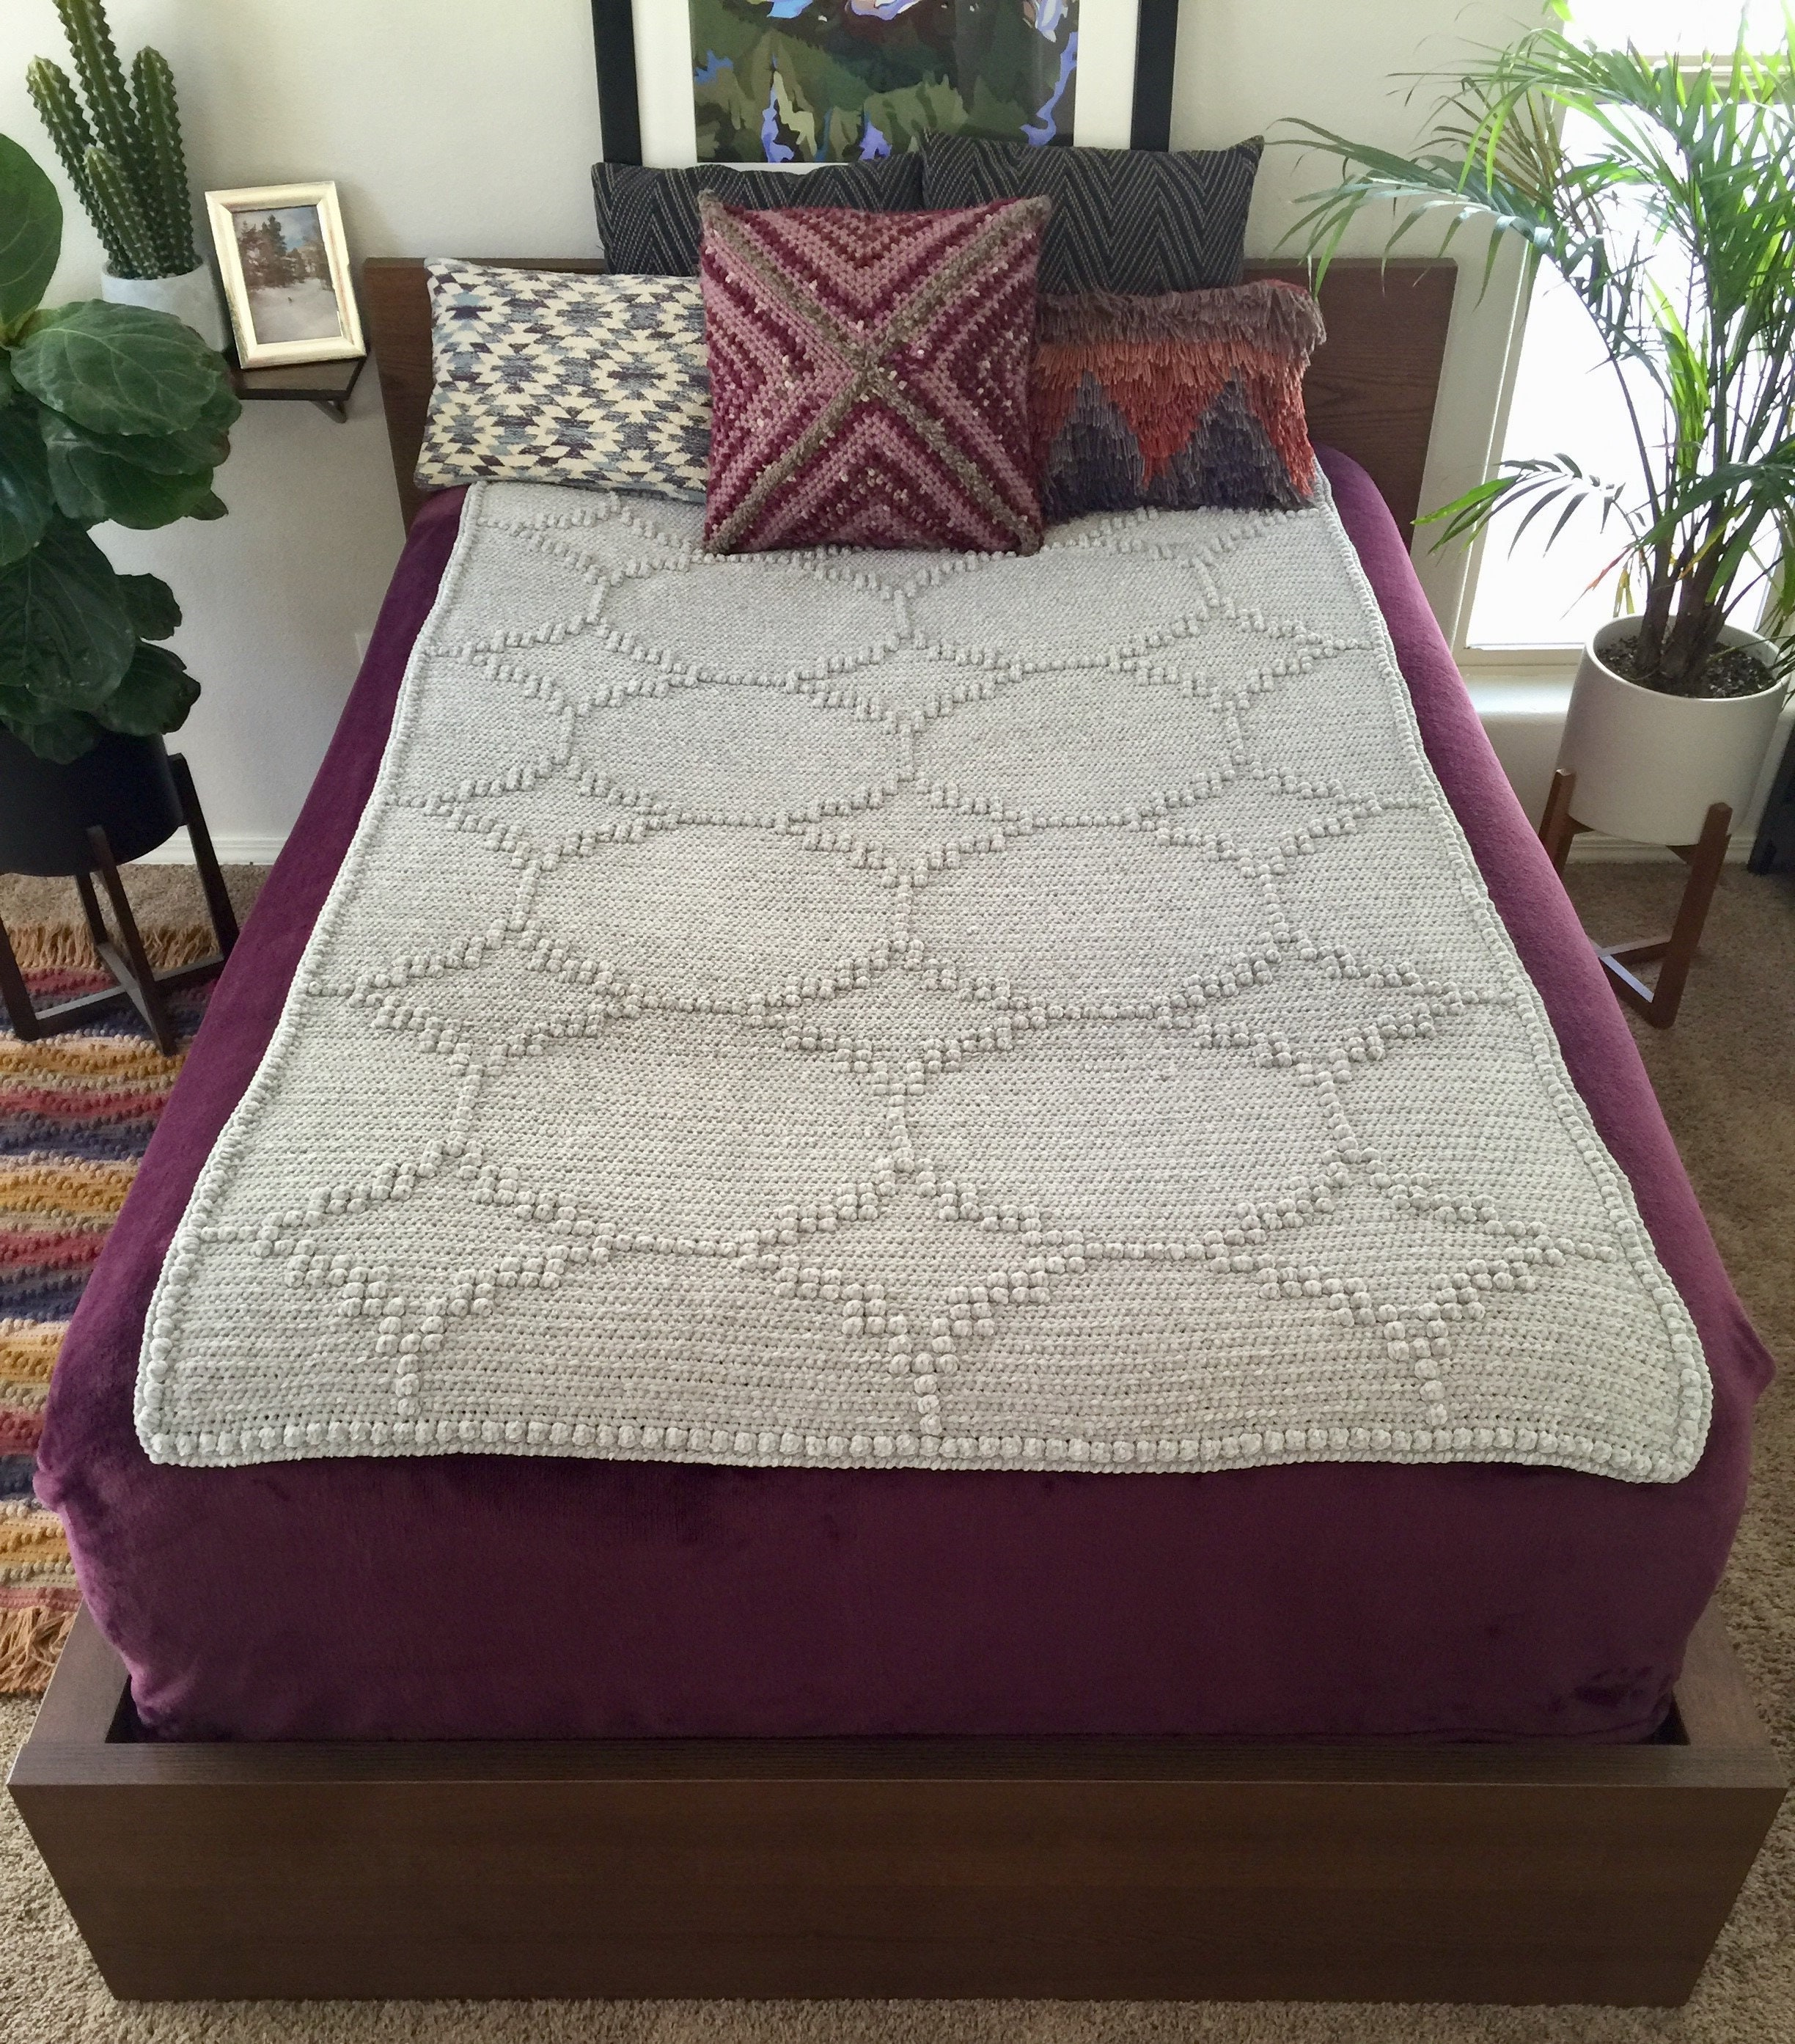 Luxe Wedding Blanket Crochet Pattern And Tutorial Pdf Instant Etsy